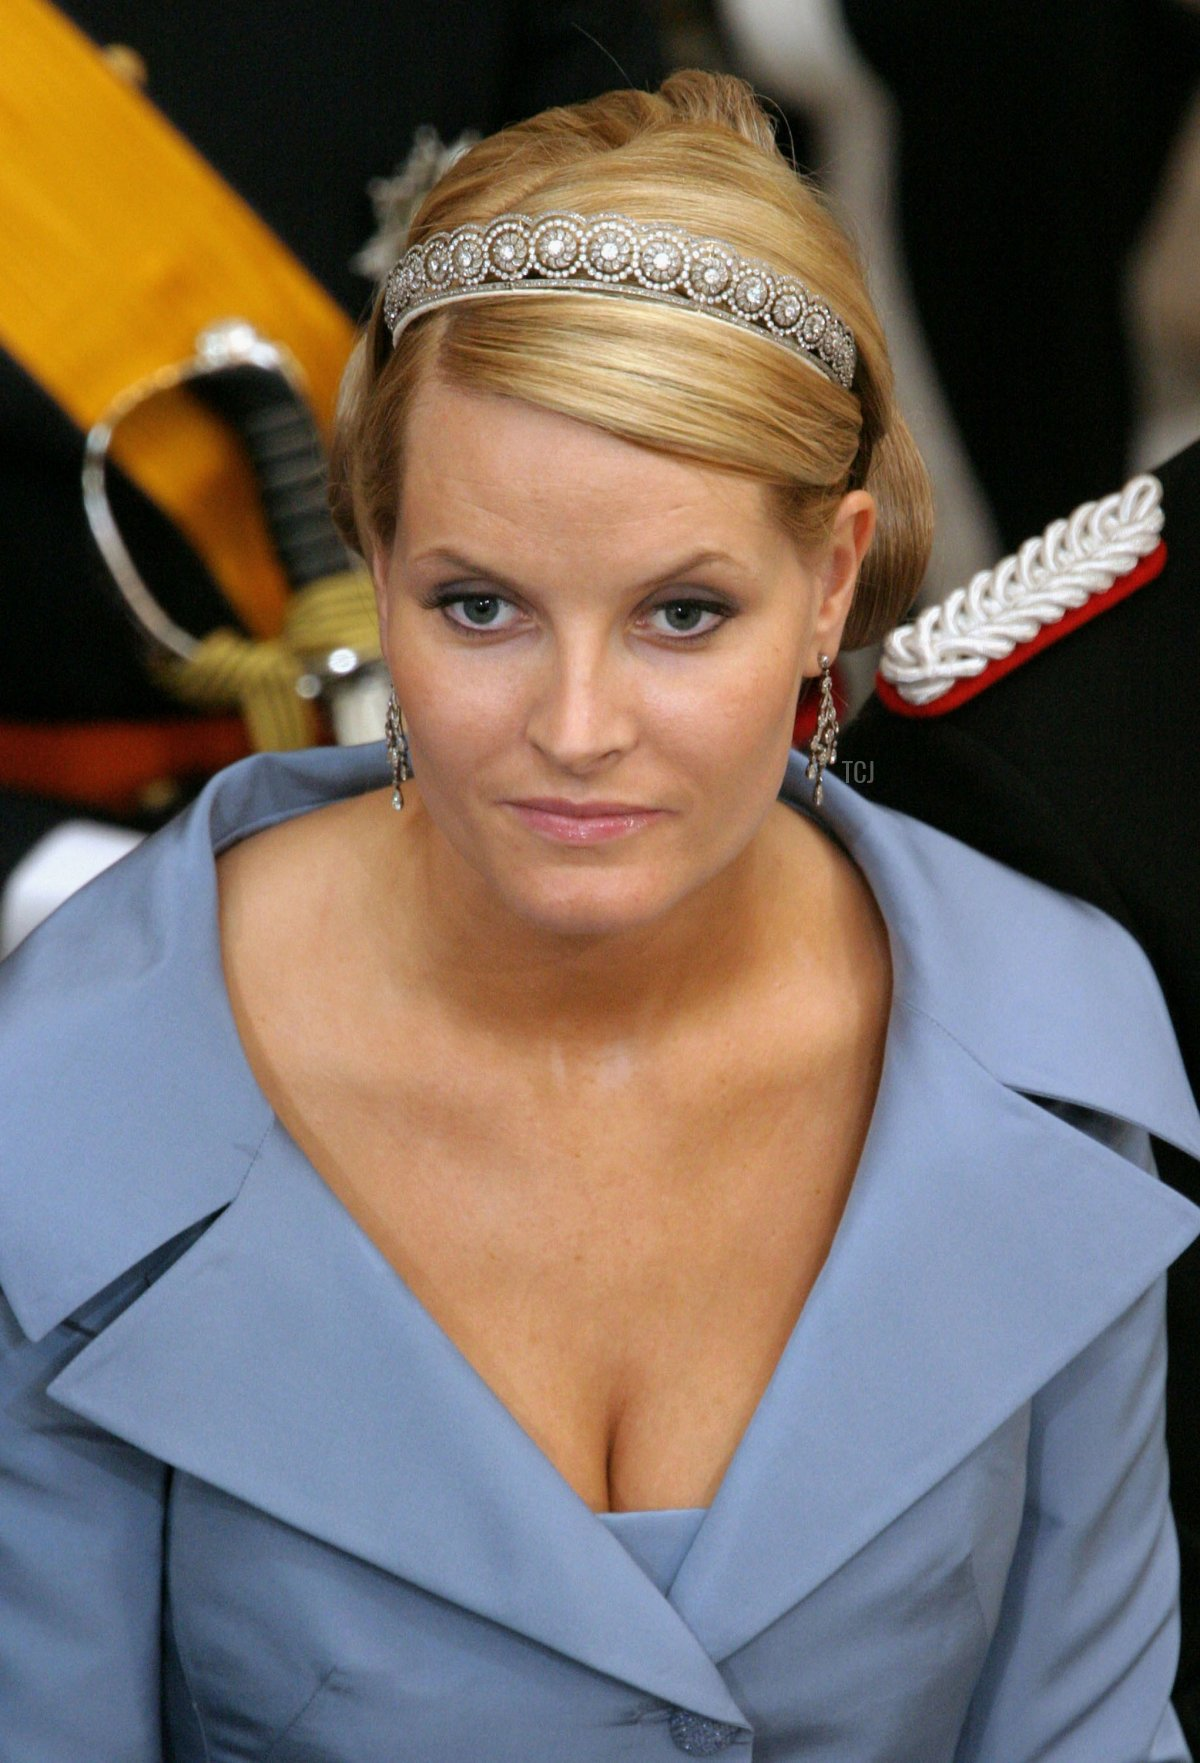 Crown Princess Mette-Marit of Norway arrives to attend the wedding between Danish Crown Prince Frederik and Miss Mary Elizabeth Donaldson in Copenhagen Cathedral May 14, 2004